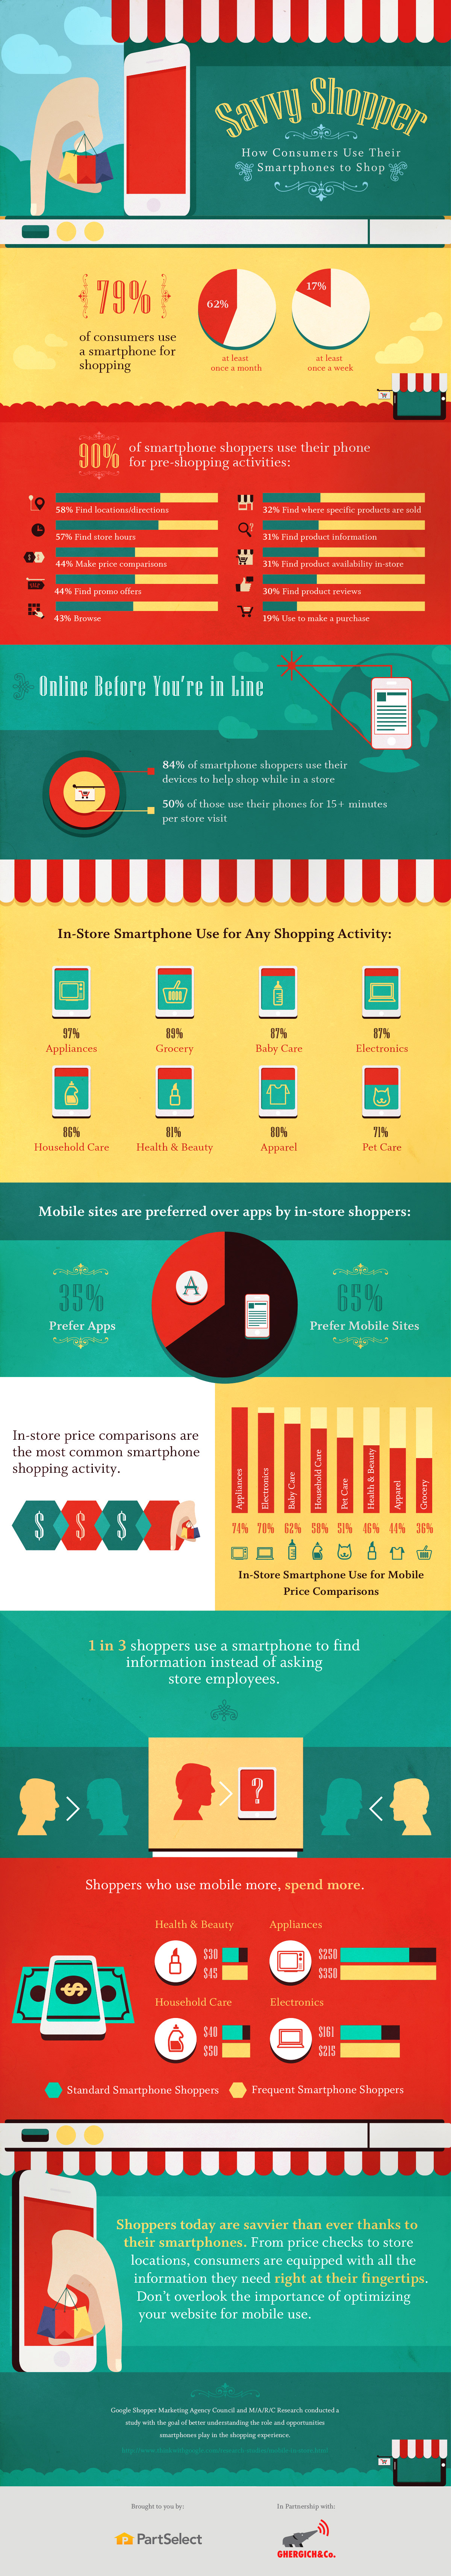 Savvy-Shopper-Infographic